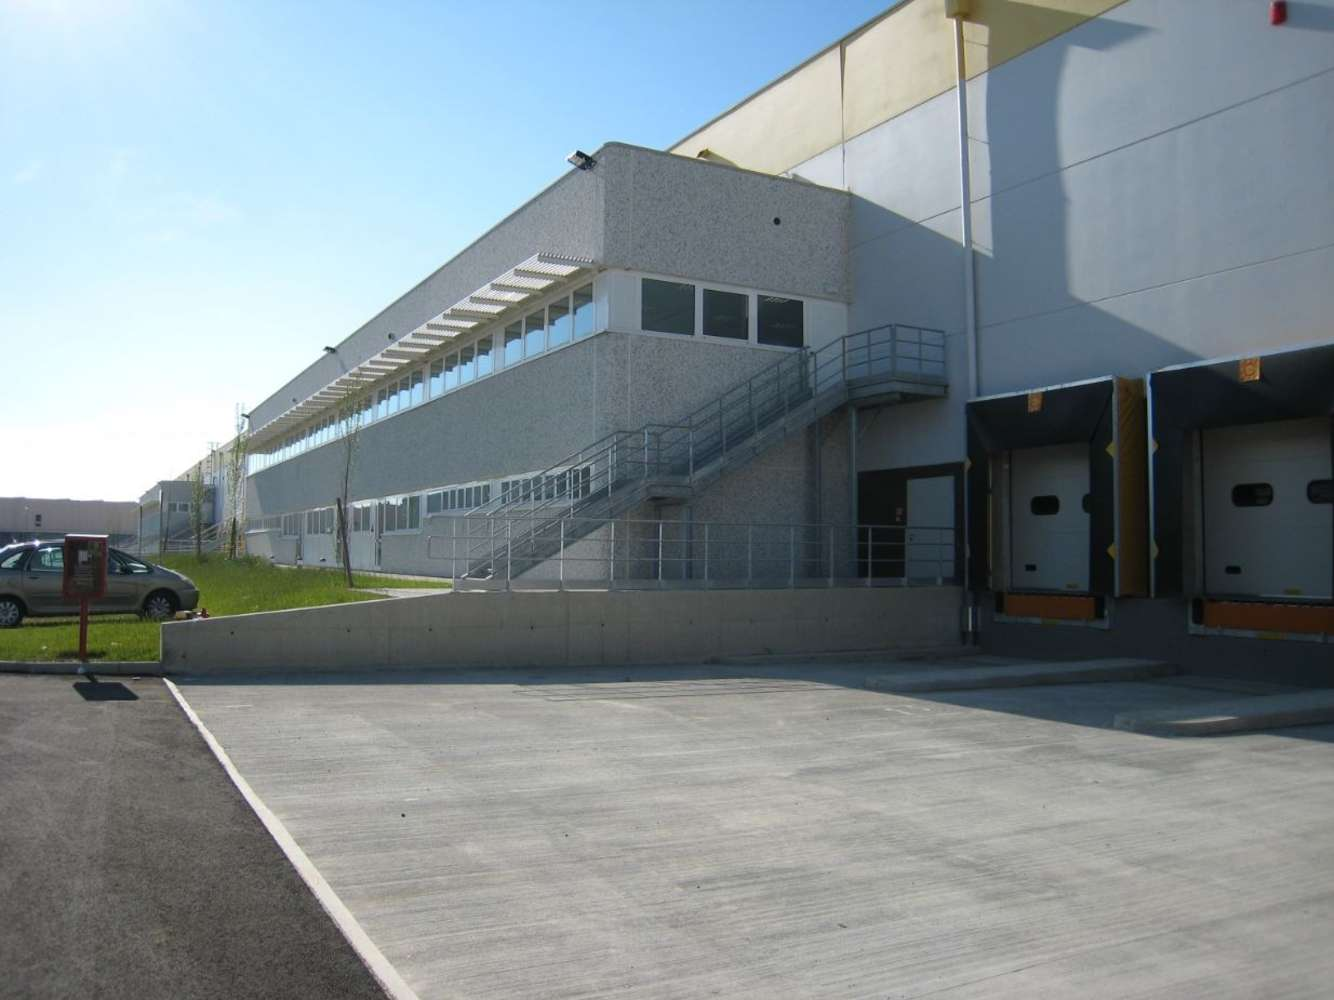 Magazzini industriali e logistici Biandrate (no), 28061 - Biandrate Logistics Park